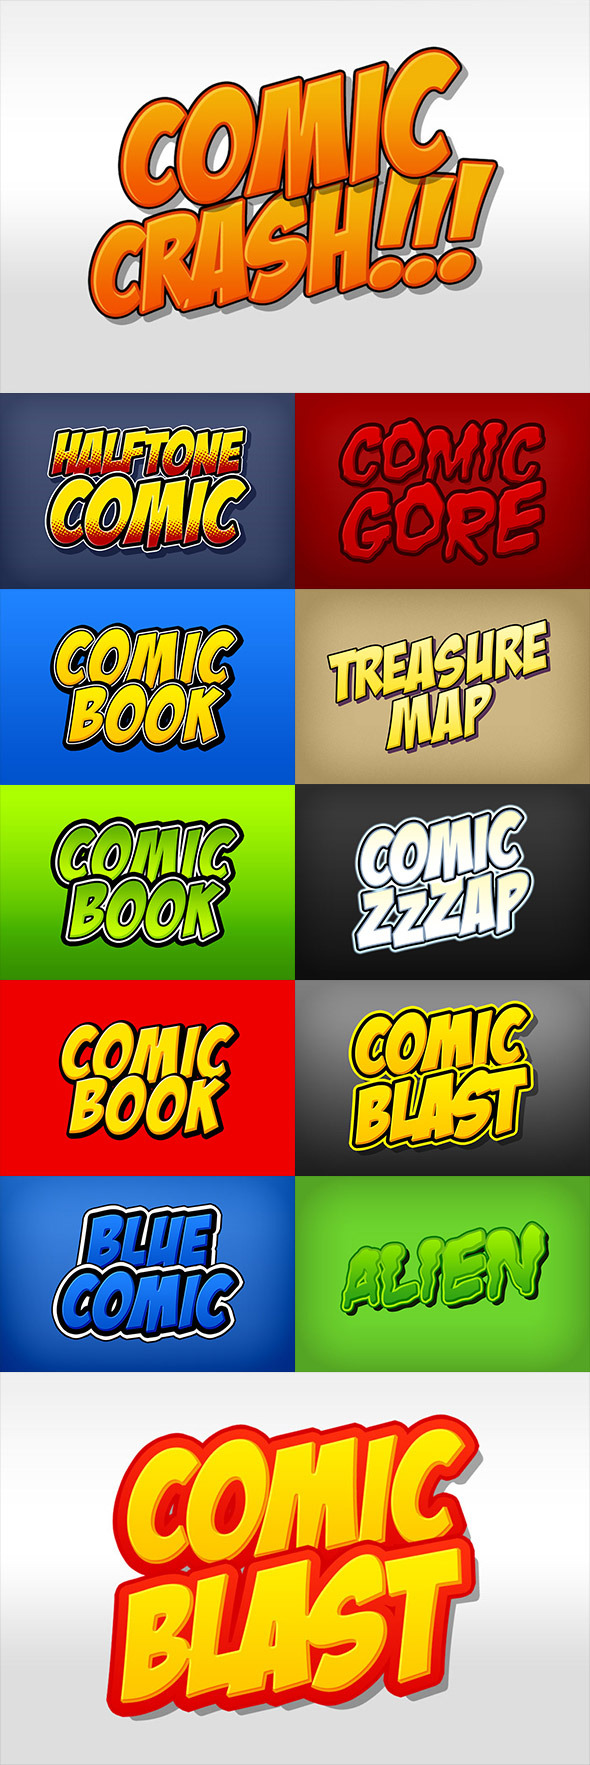 GraphicRiver Comic Book and Cartoon Photoshop Styles Pack 8888373